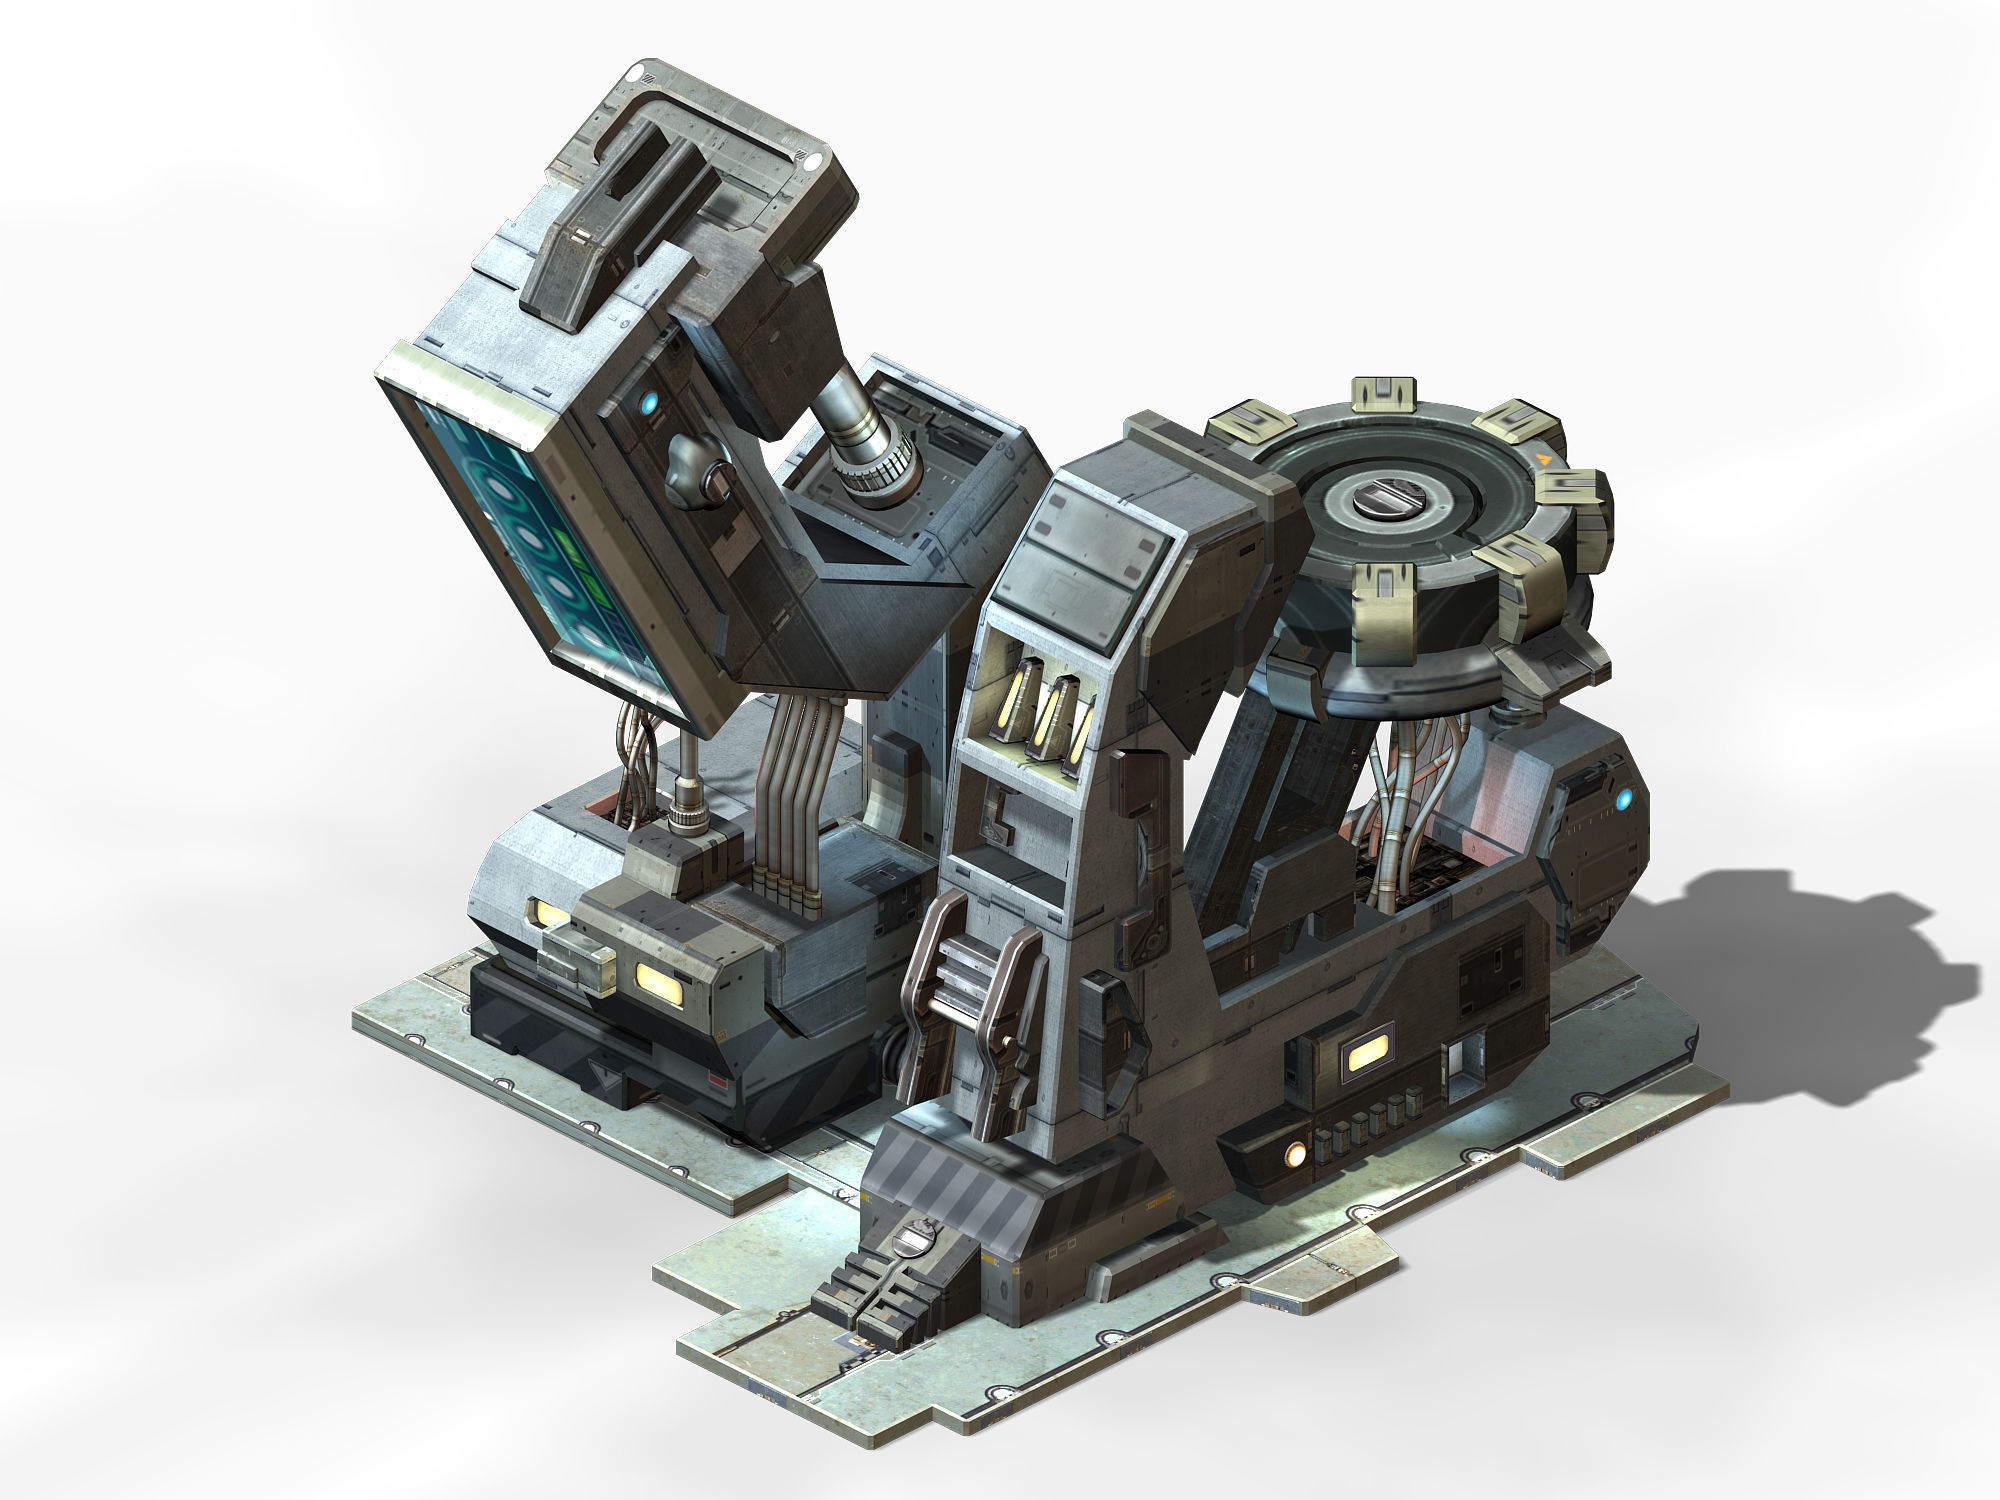 Machinery - Spacecraft - Functional Objects 019